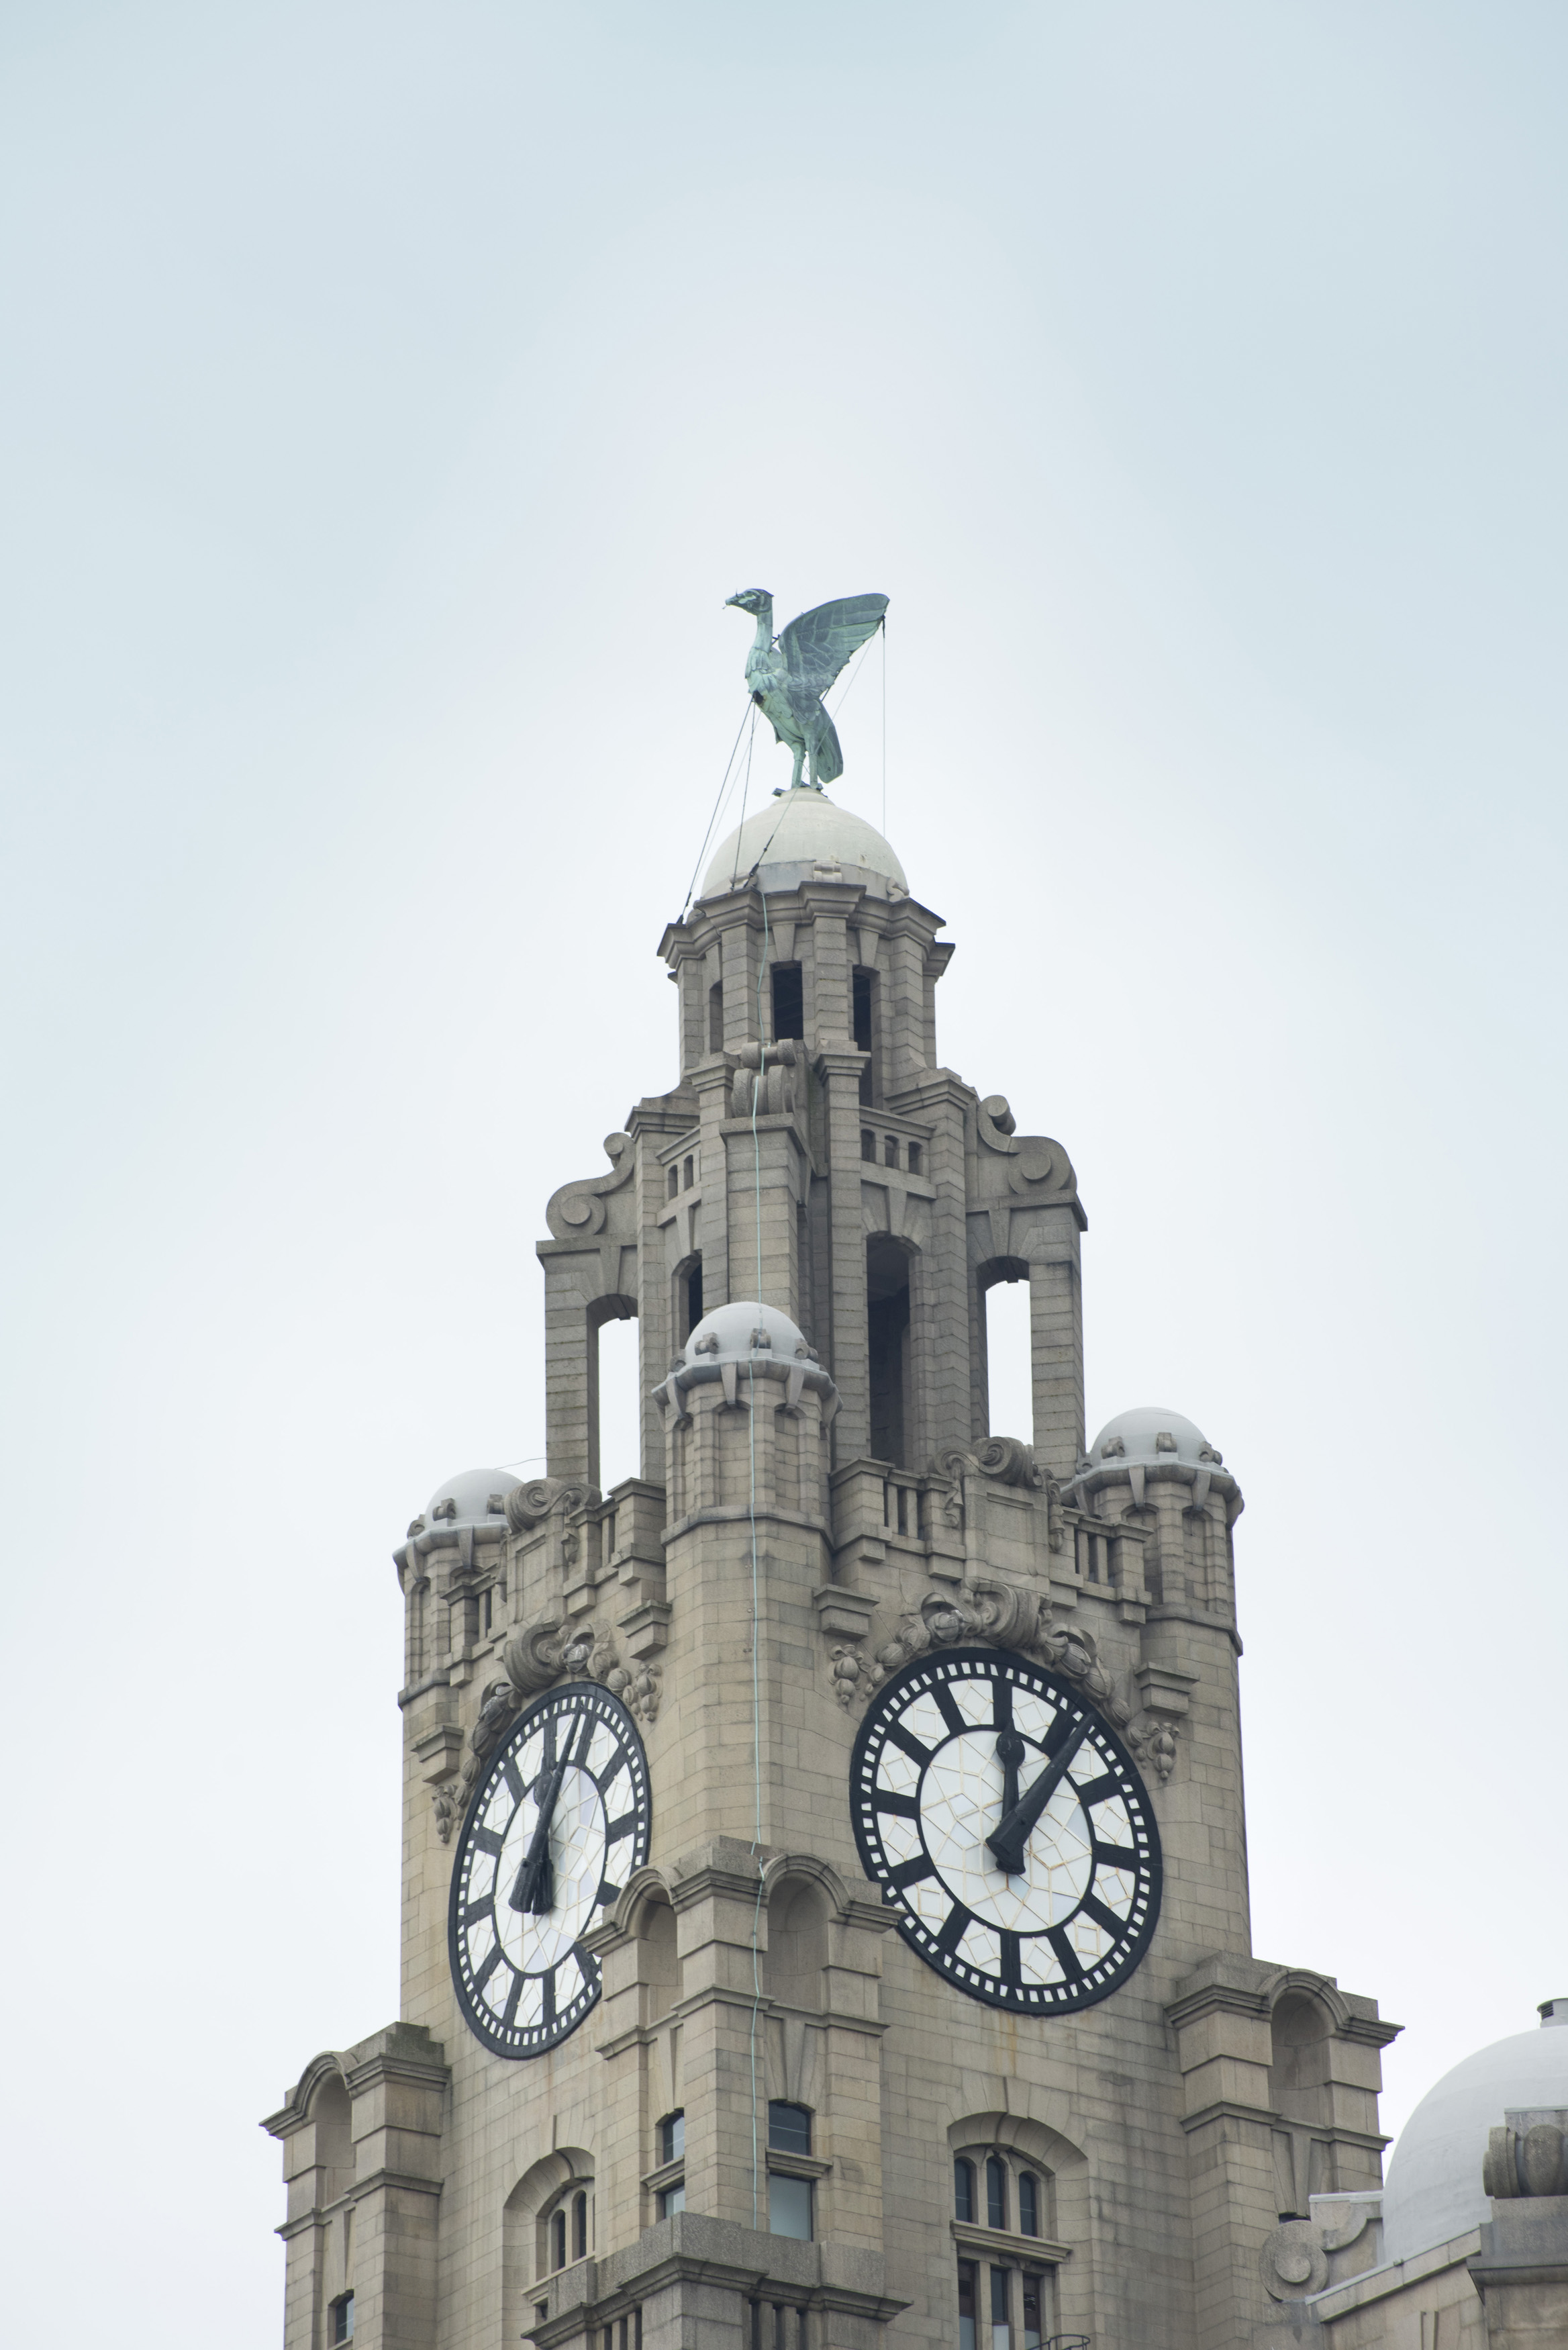 Clock tower on the Liver building, Liverpool, England surmounted by one of the two Liver Birds, a cormorant, wich if it were to fly away would mean the end of the city